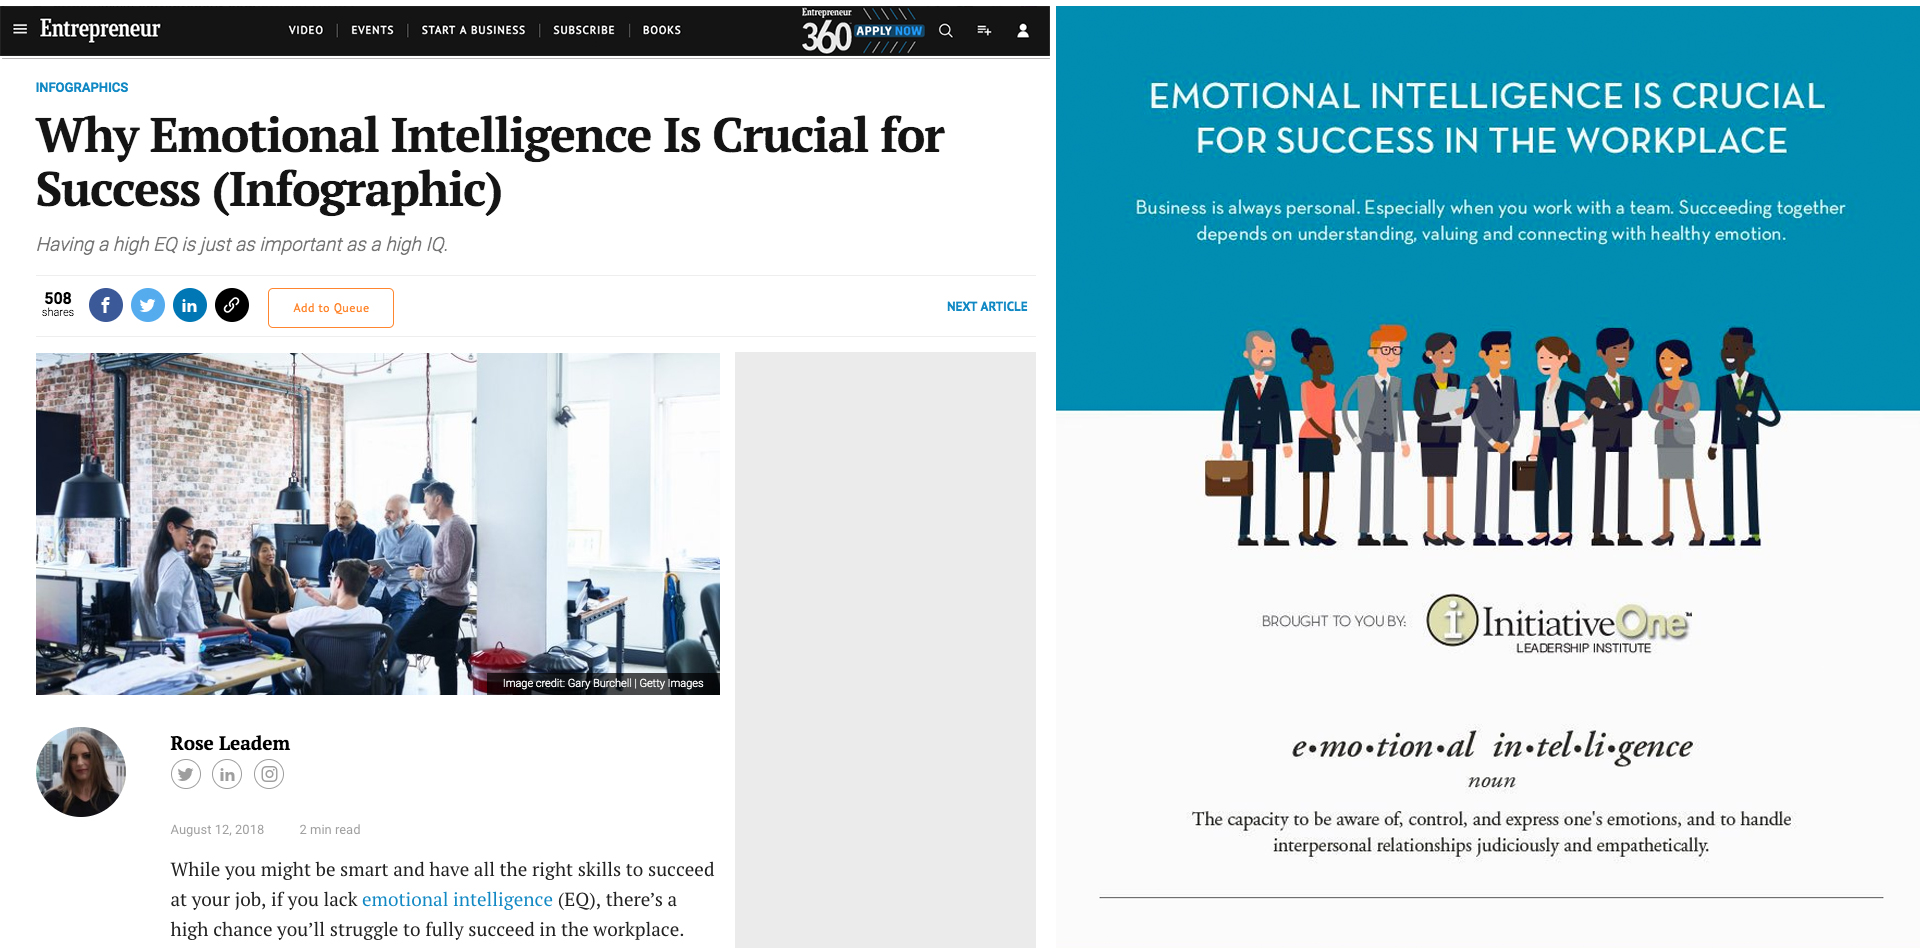 InitiativeOne Client Story: Content Marketing Drives Leads